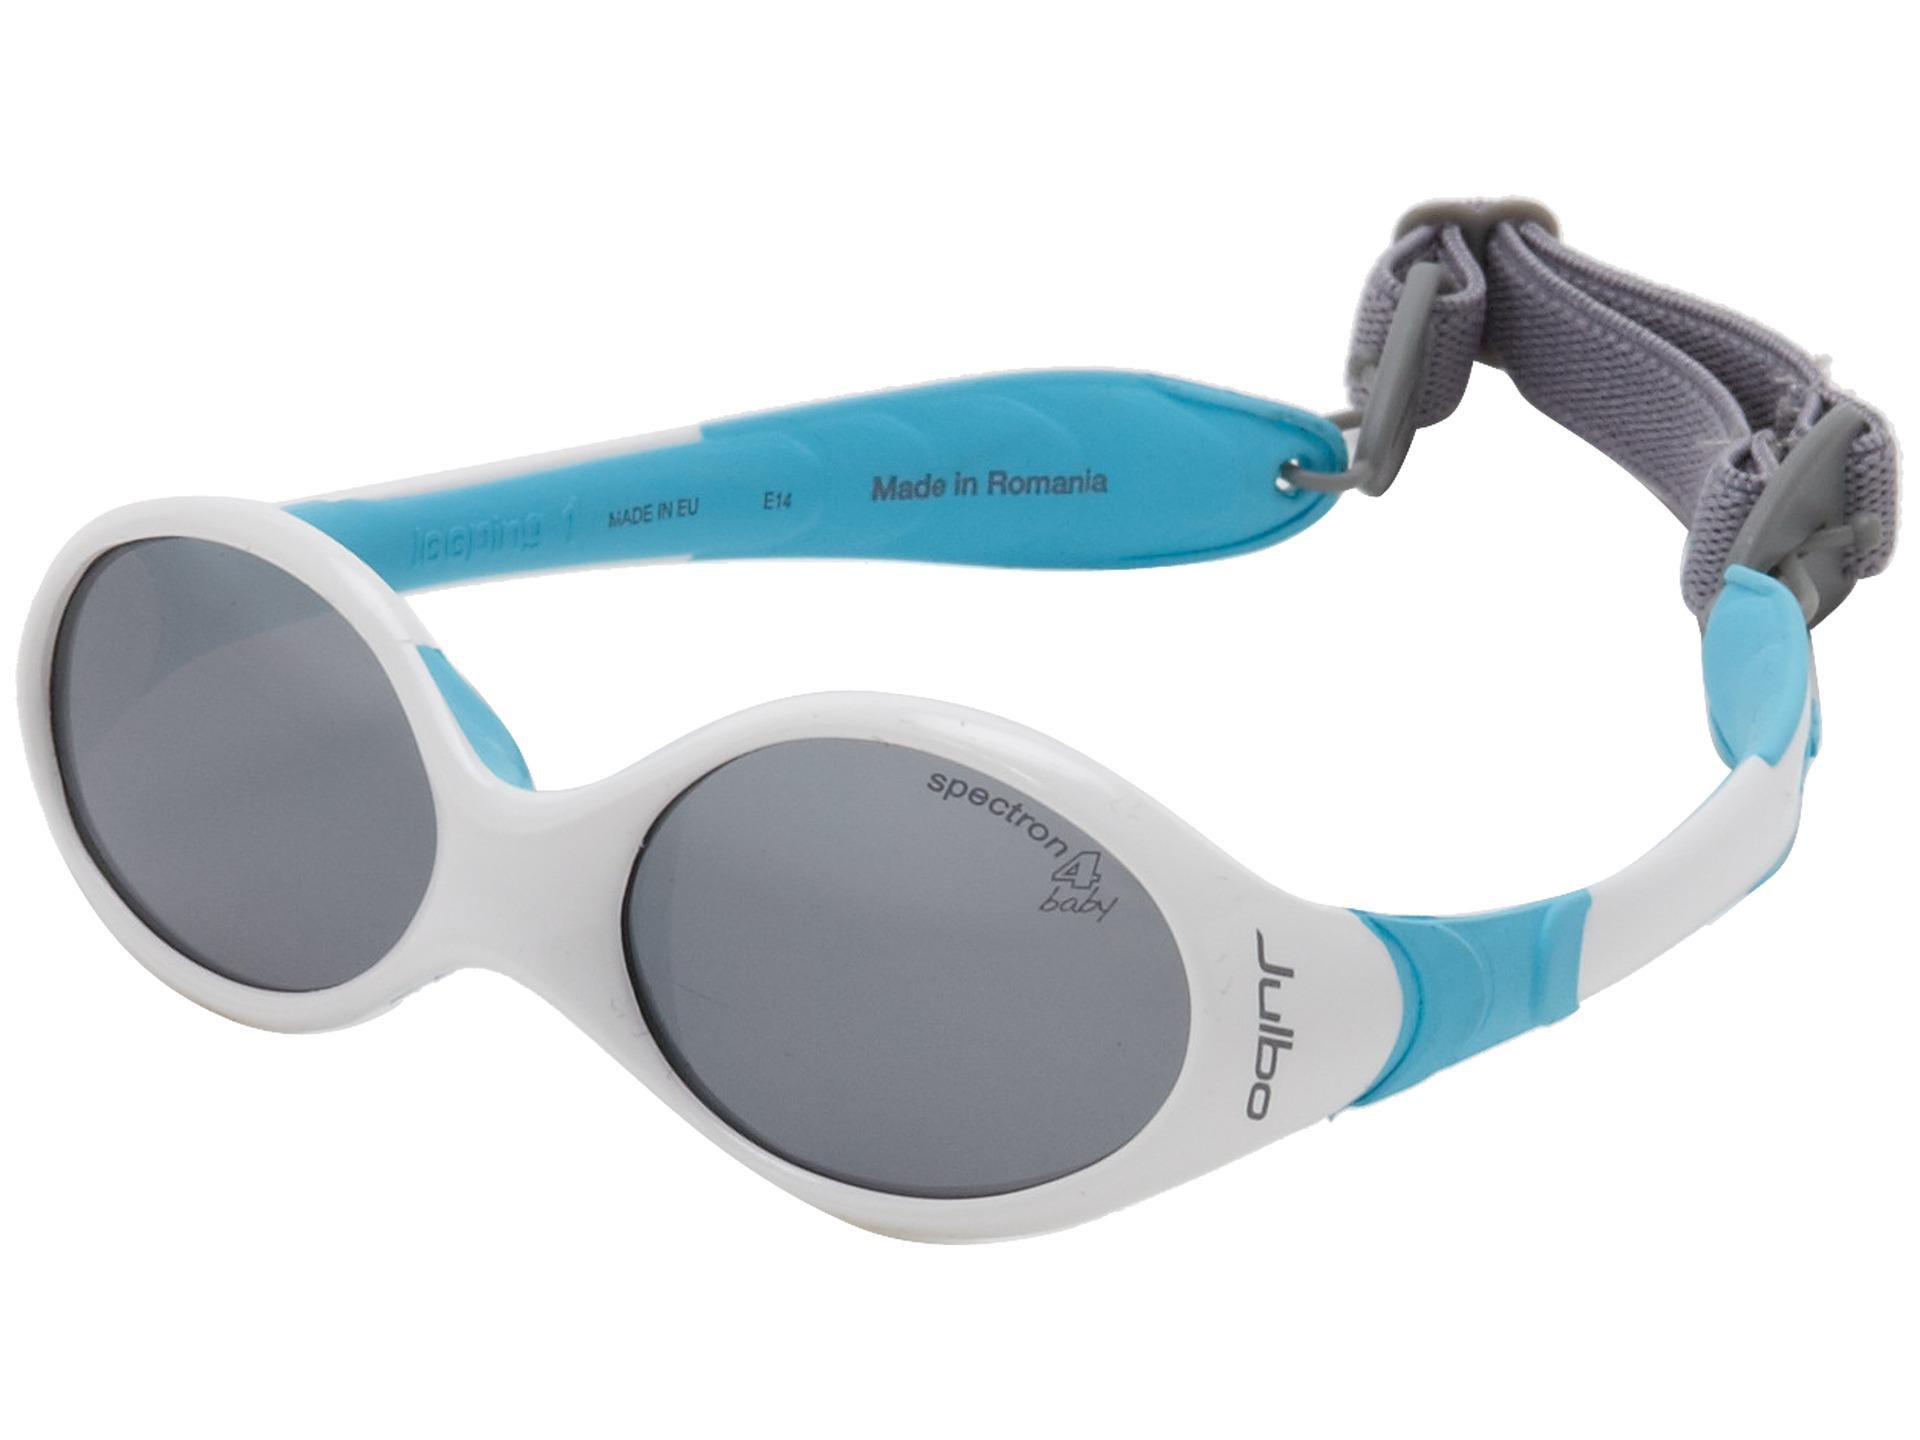 ce90f87f15 Baby Sunglasses Review